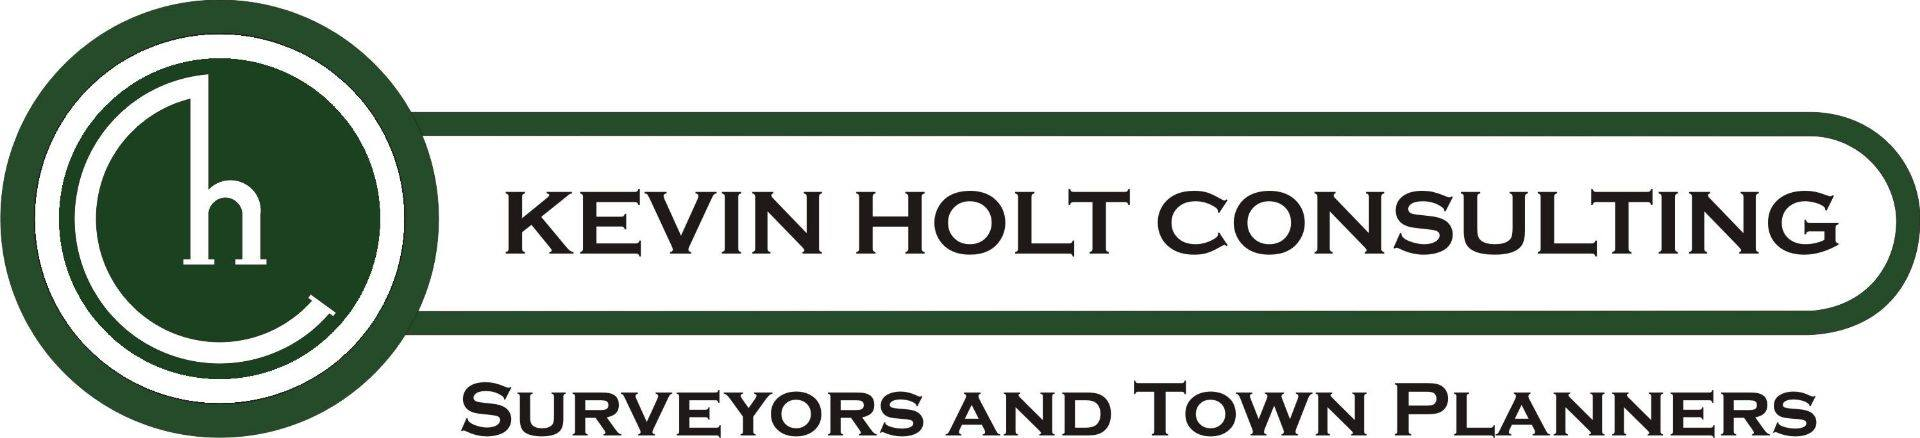 Kevin Holt Consulting Logo